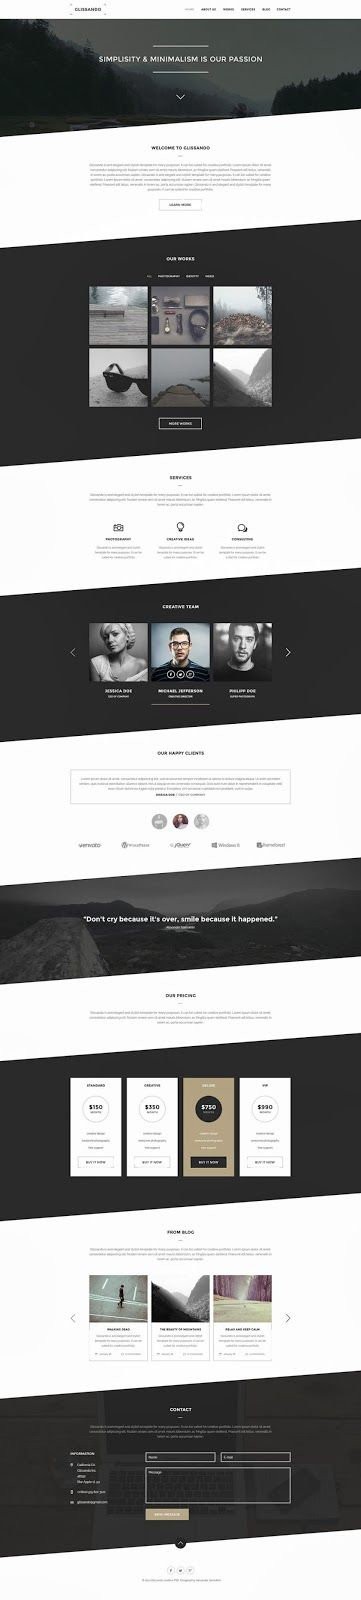 54 best Paid#Templates#PSD images on Pinterest